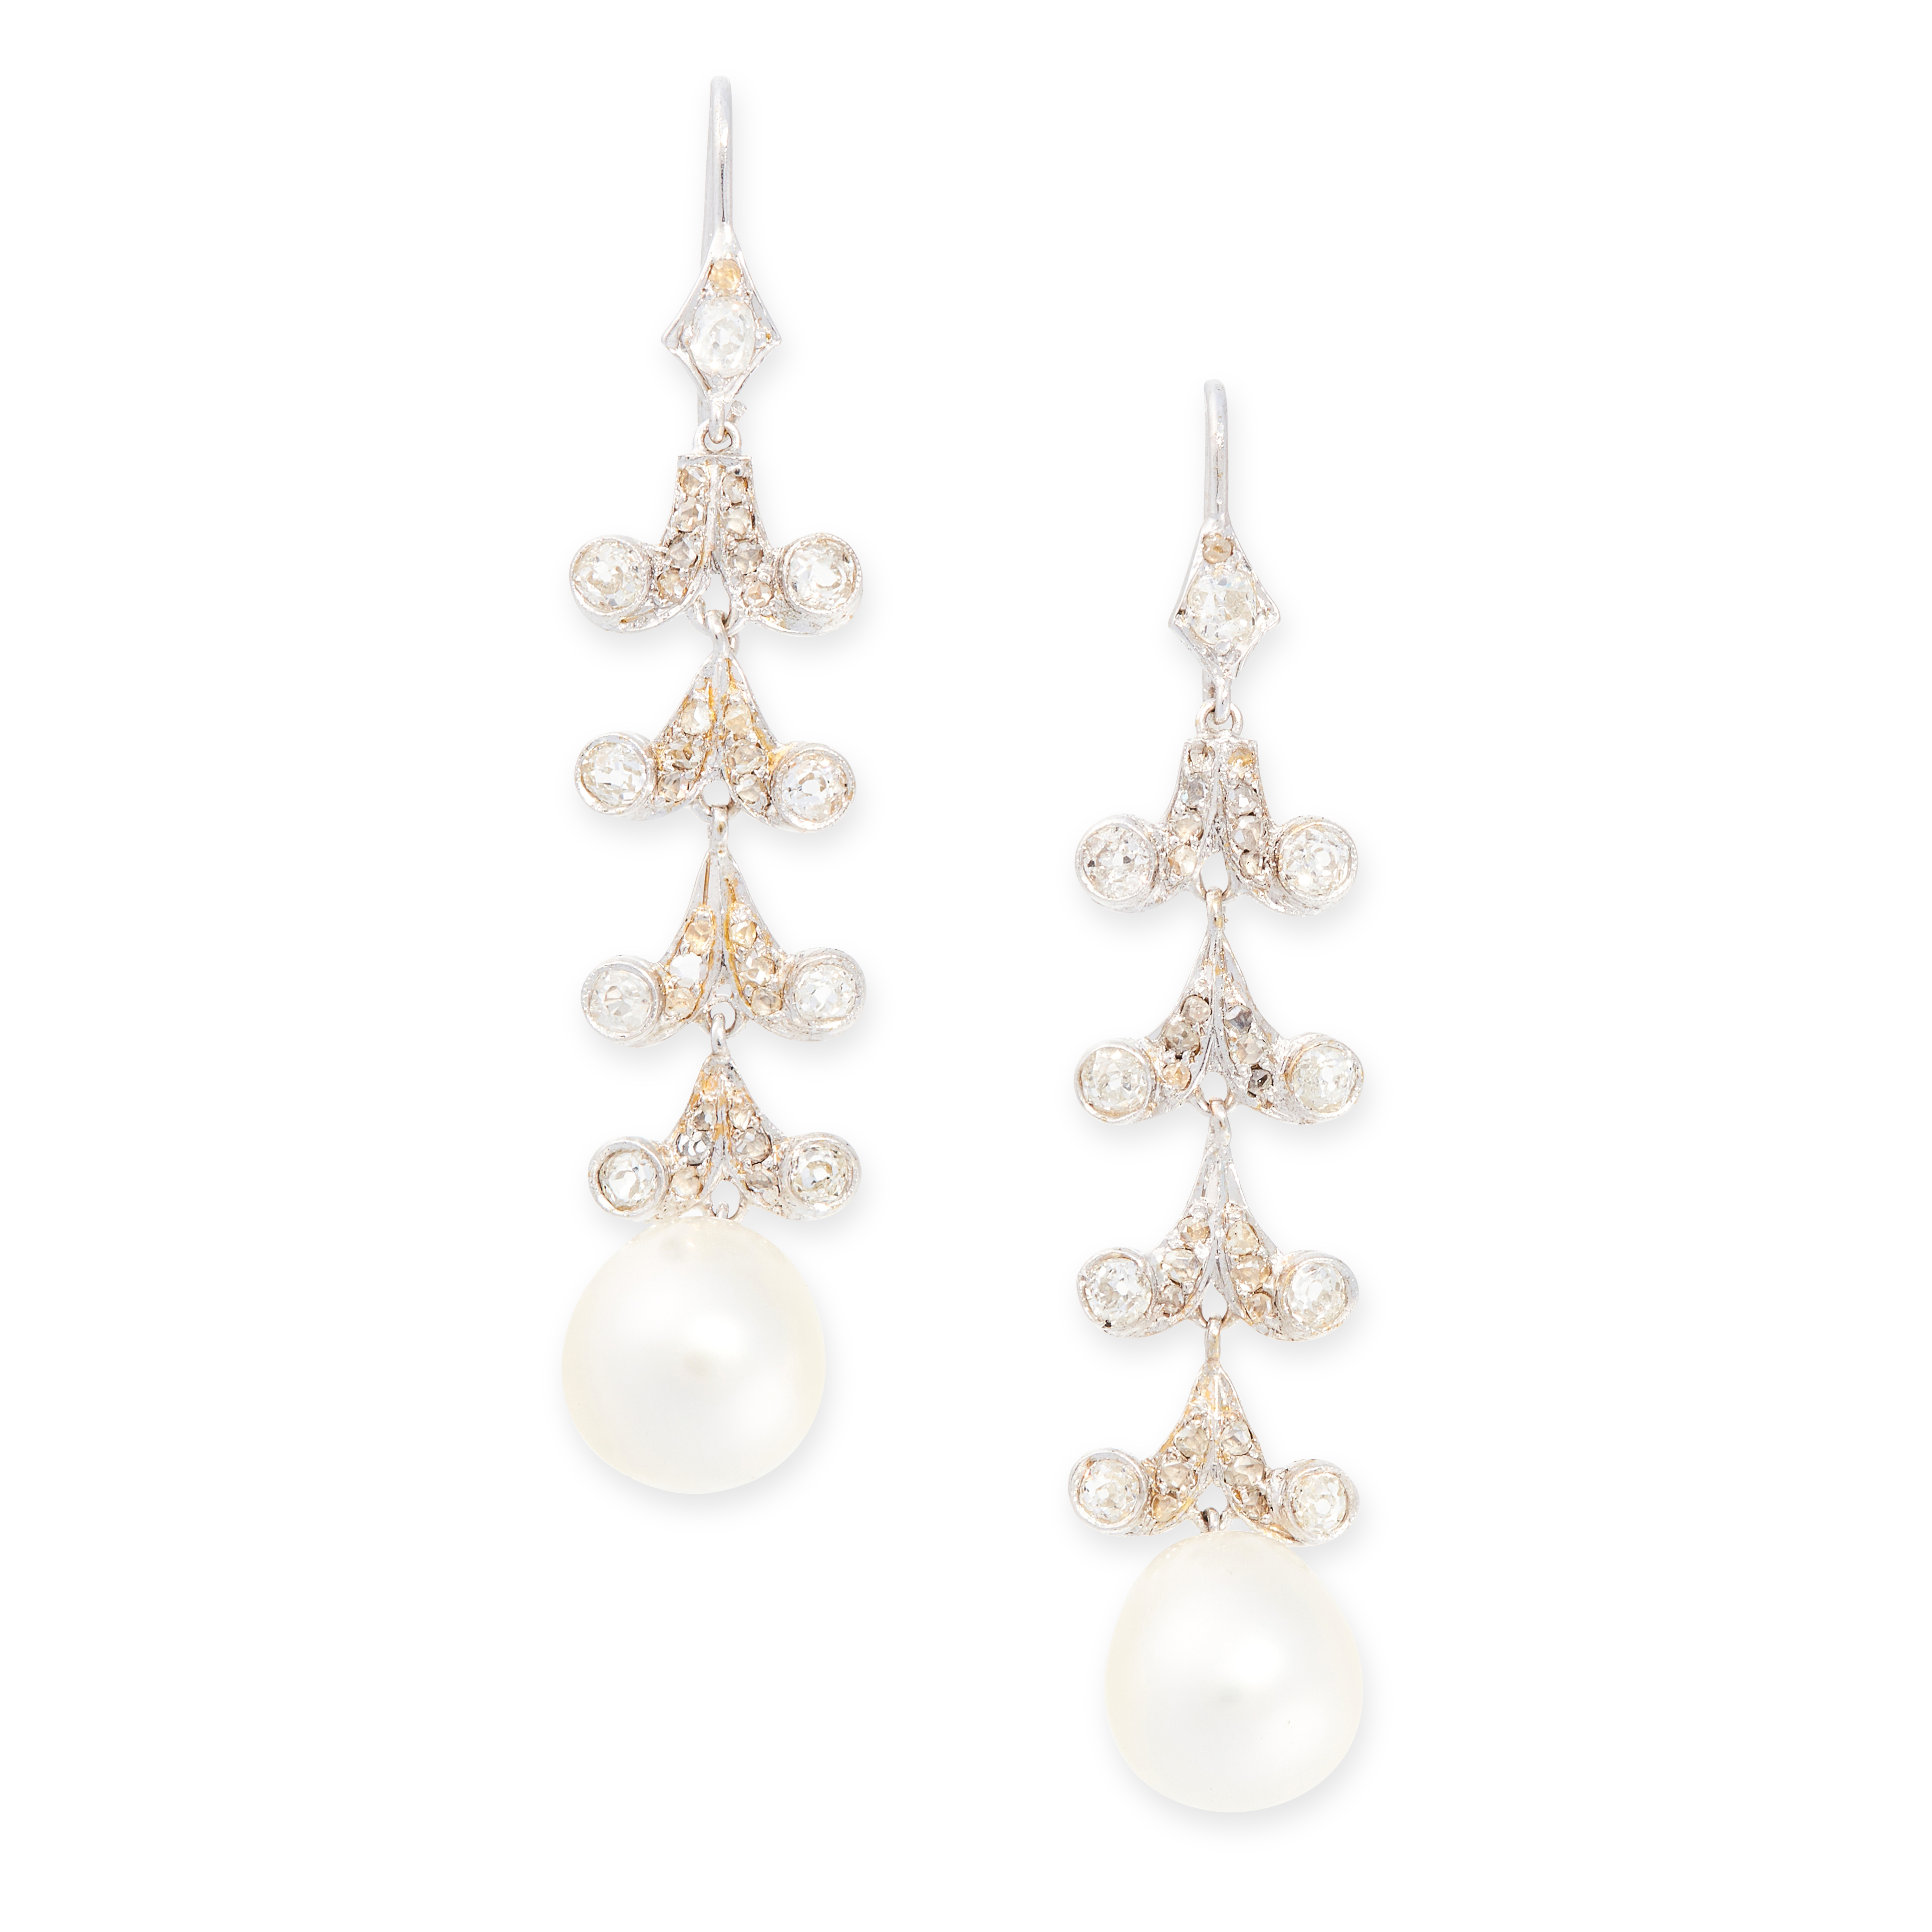 A PAIR OF PEARL AND DIAMOND EARRINGS each set with a pearl of 11.5mm, below scrolling links set with